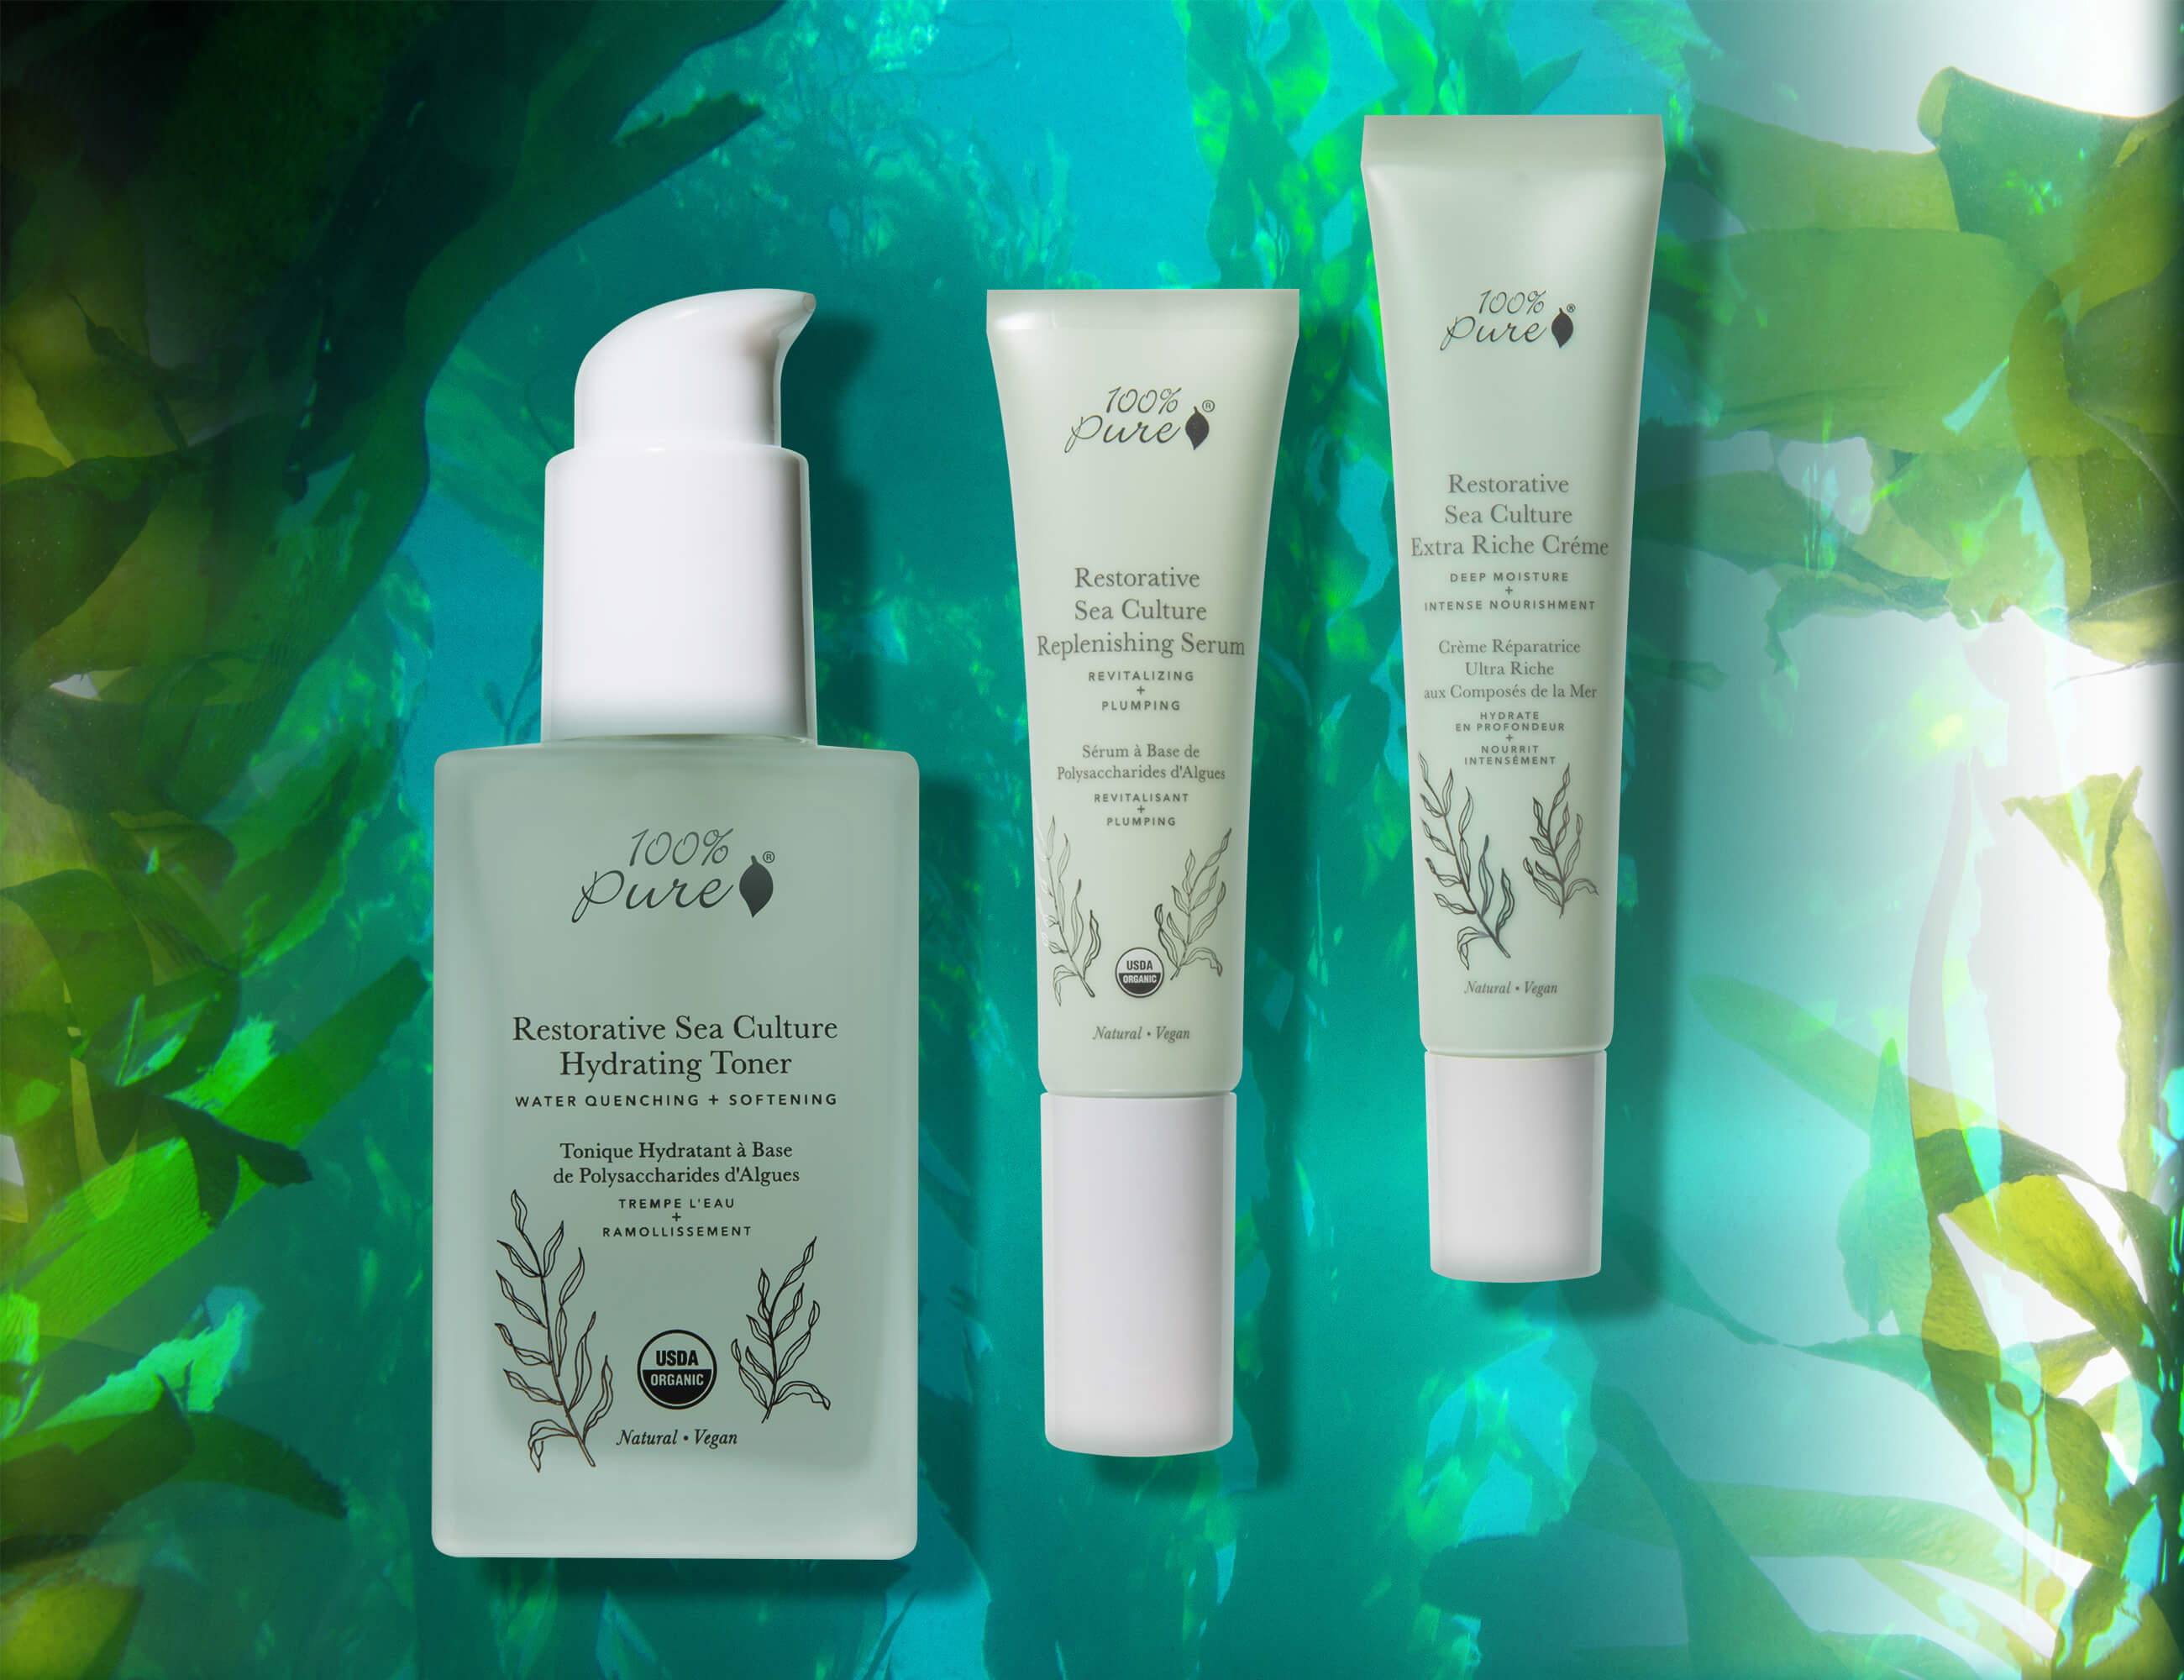 100% PURE Restorative Sea Culture Products